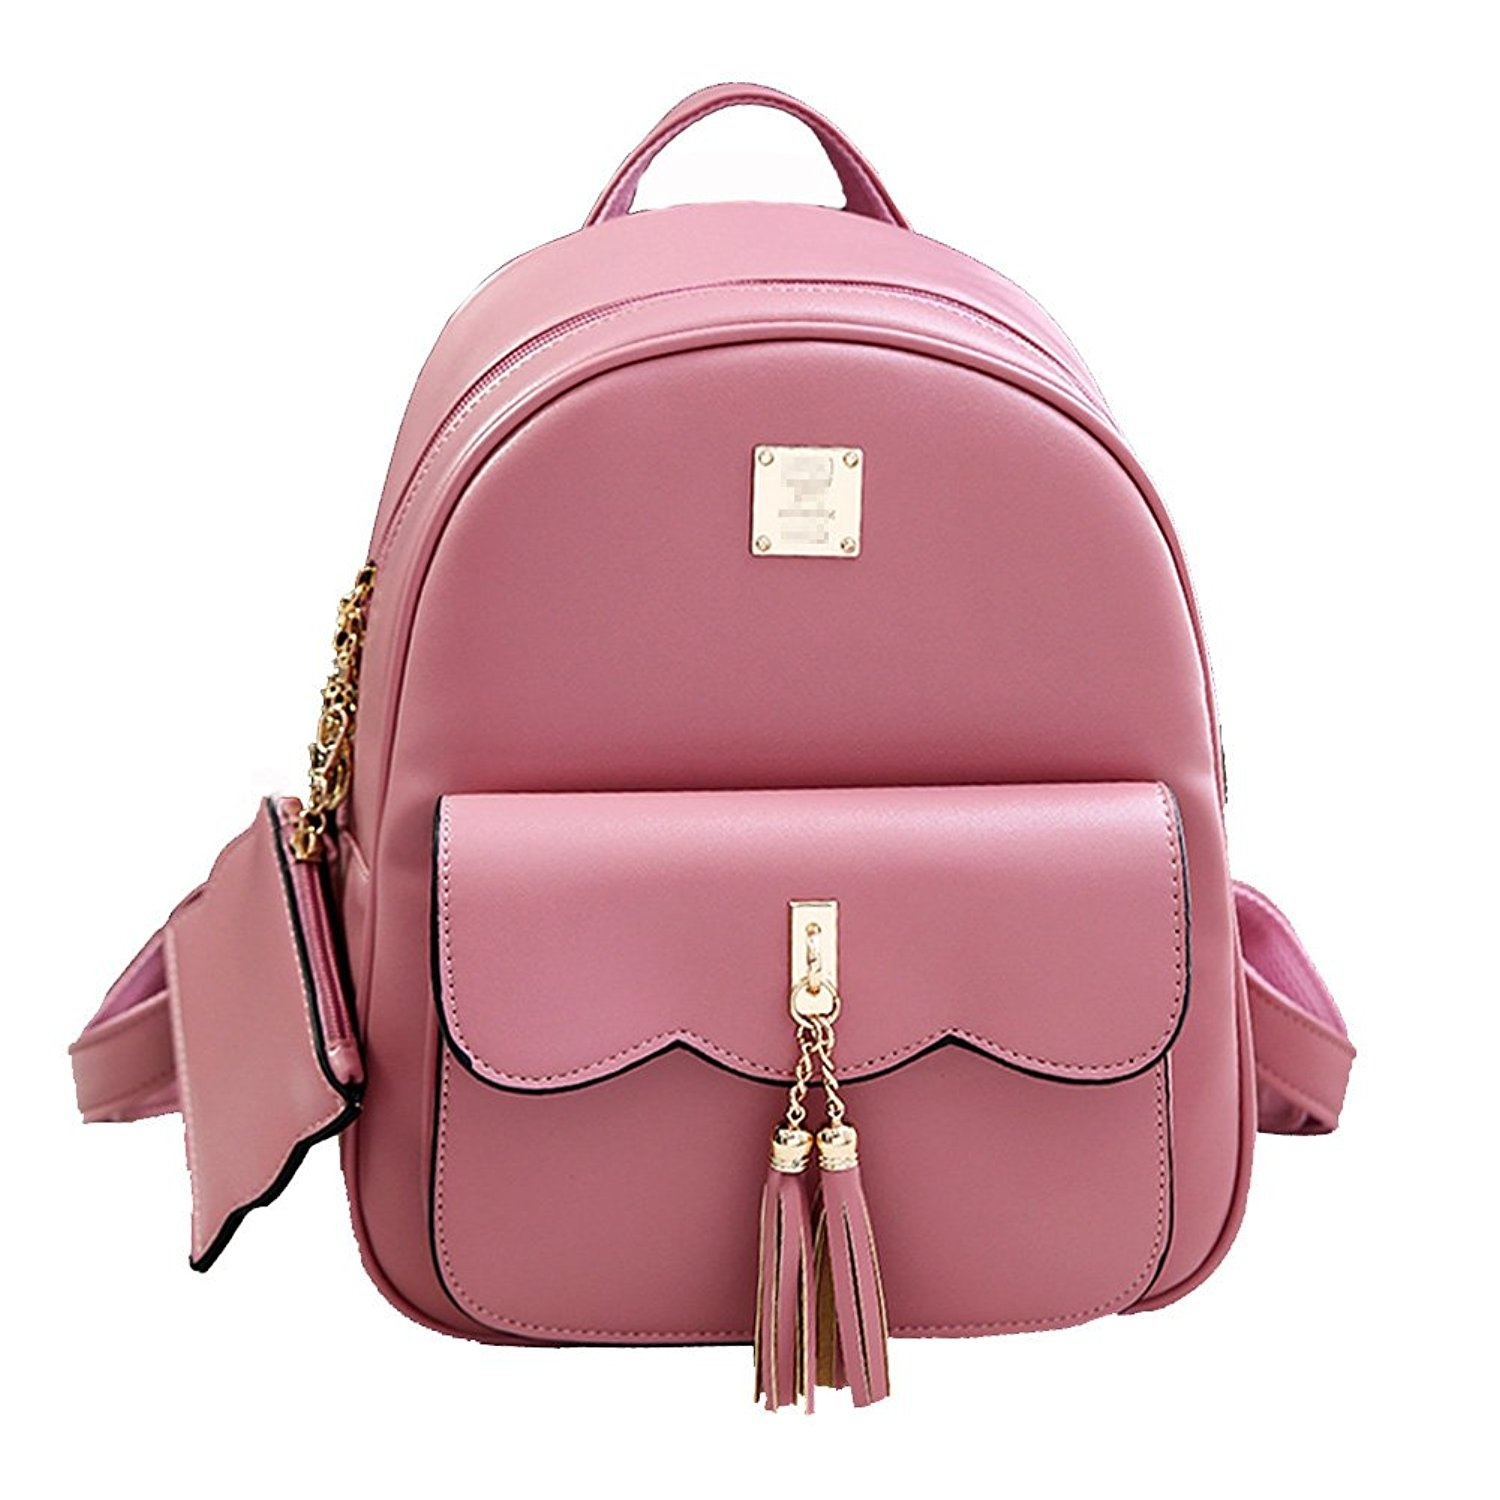 62a45795662 Women Vintage Tassel Backpack Handbags, Faux Leather Casual Daypack ...